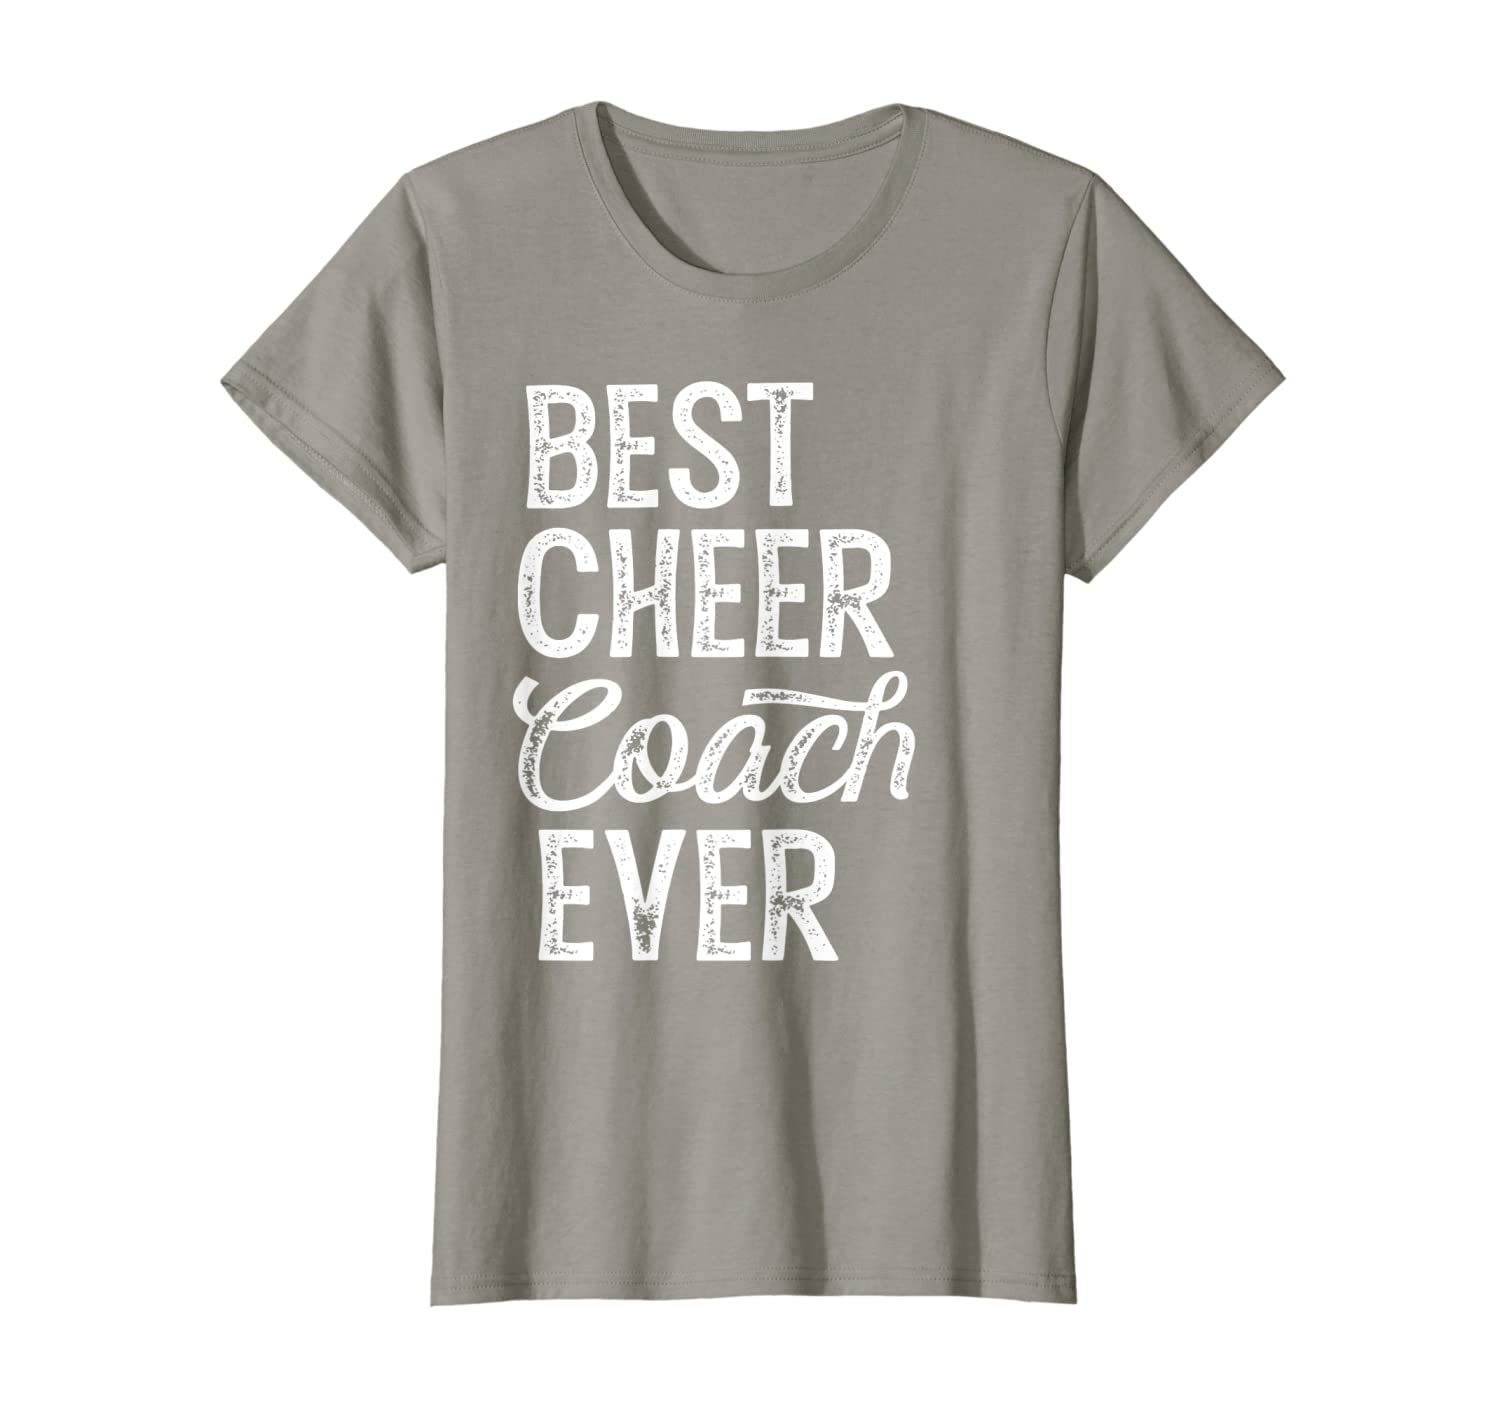 Cheerleading Coach Gifts Best Cheer Coach Ever - Coaching T-Shirt